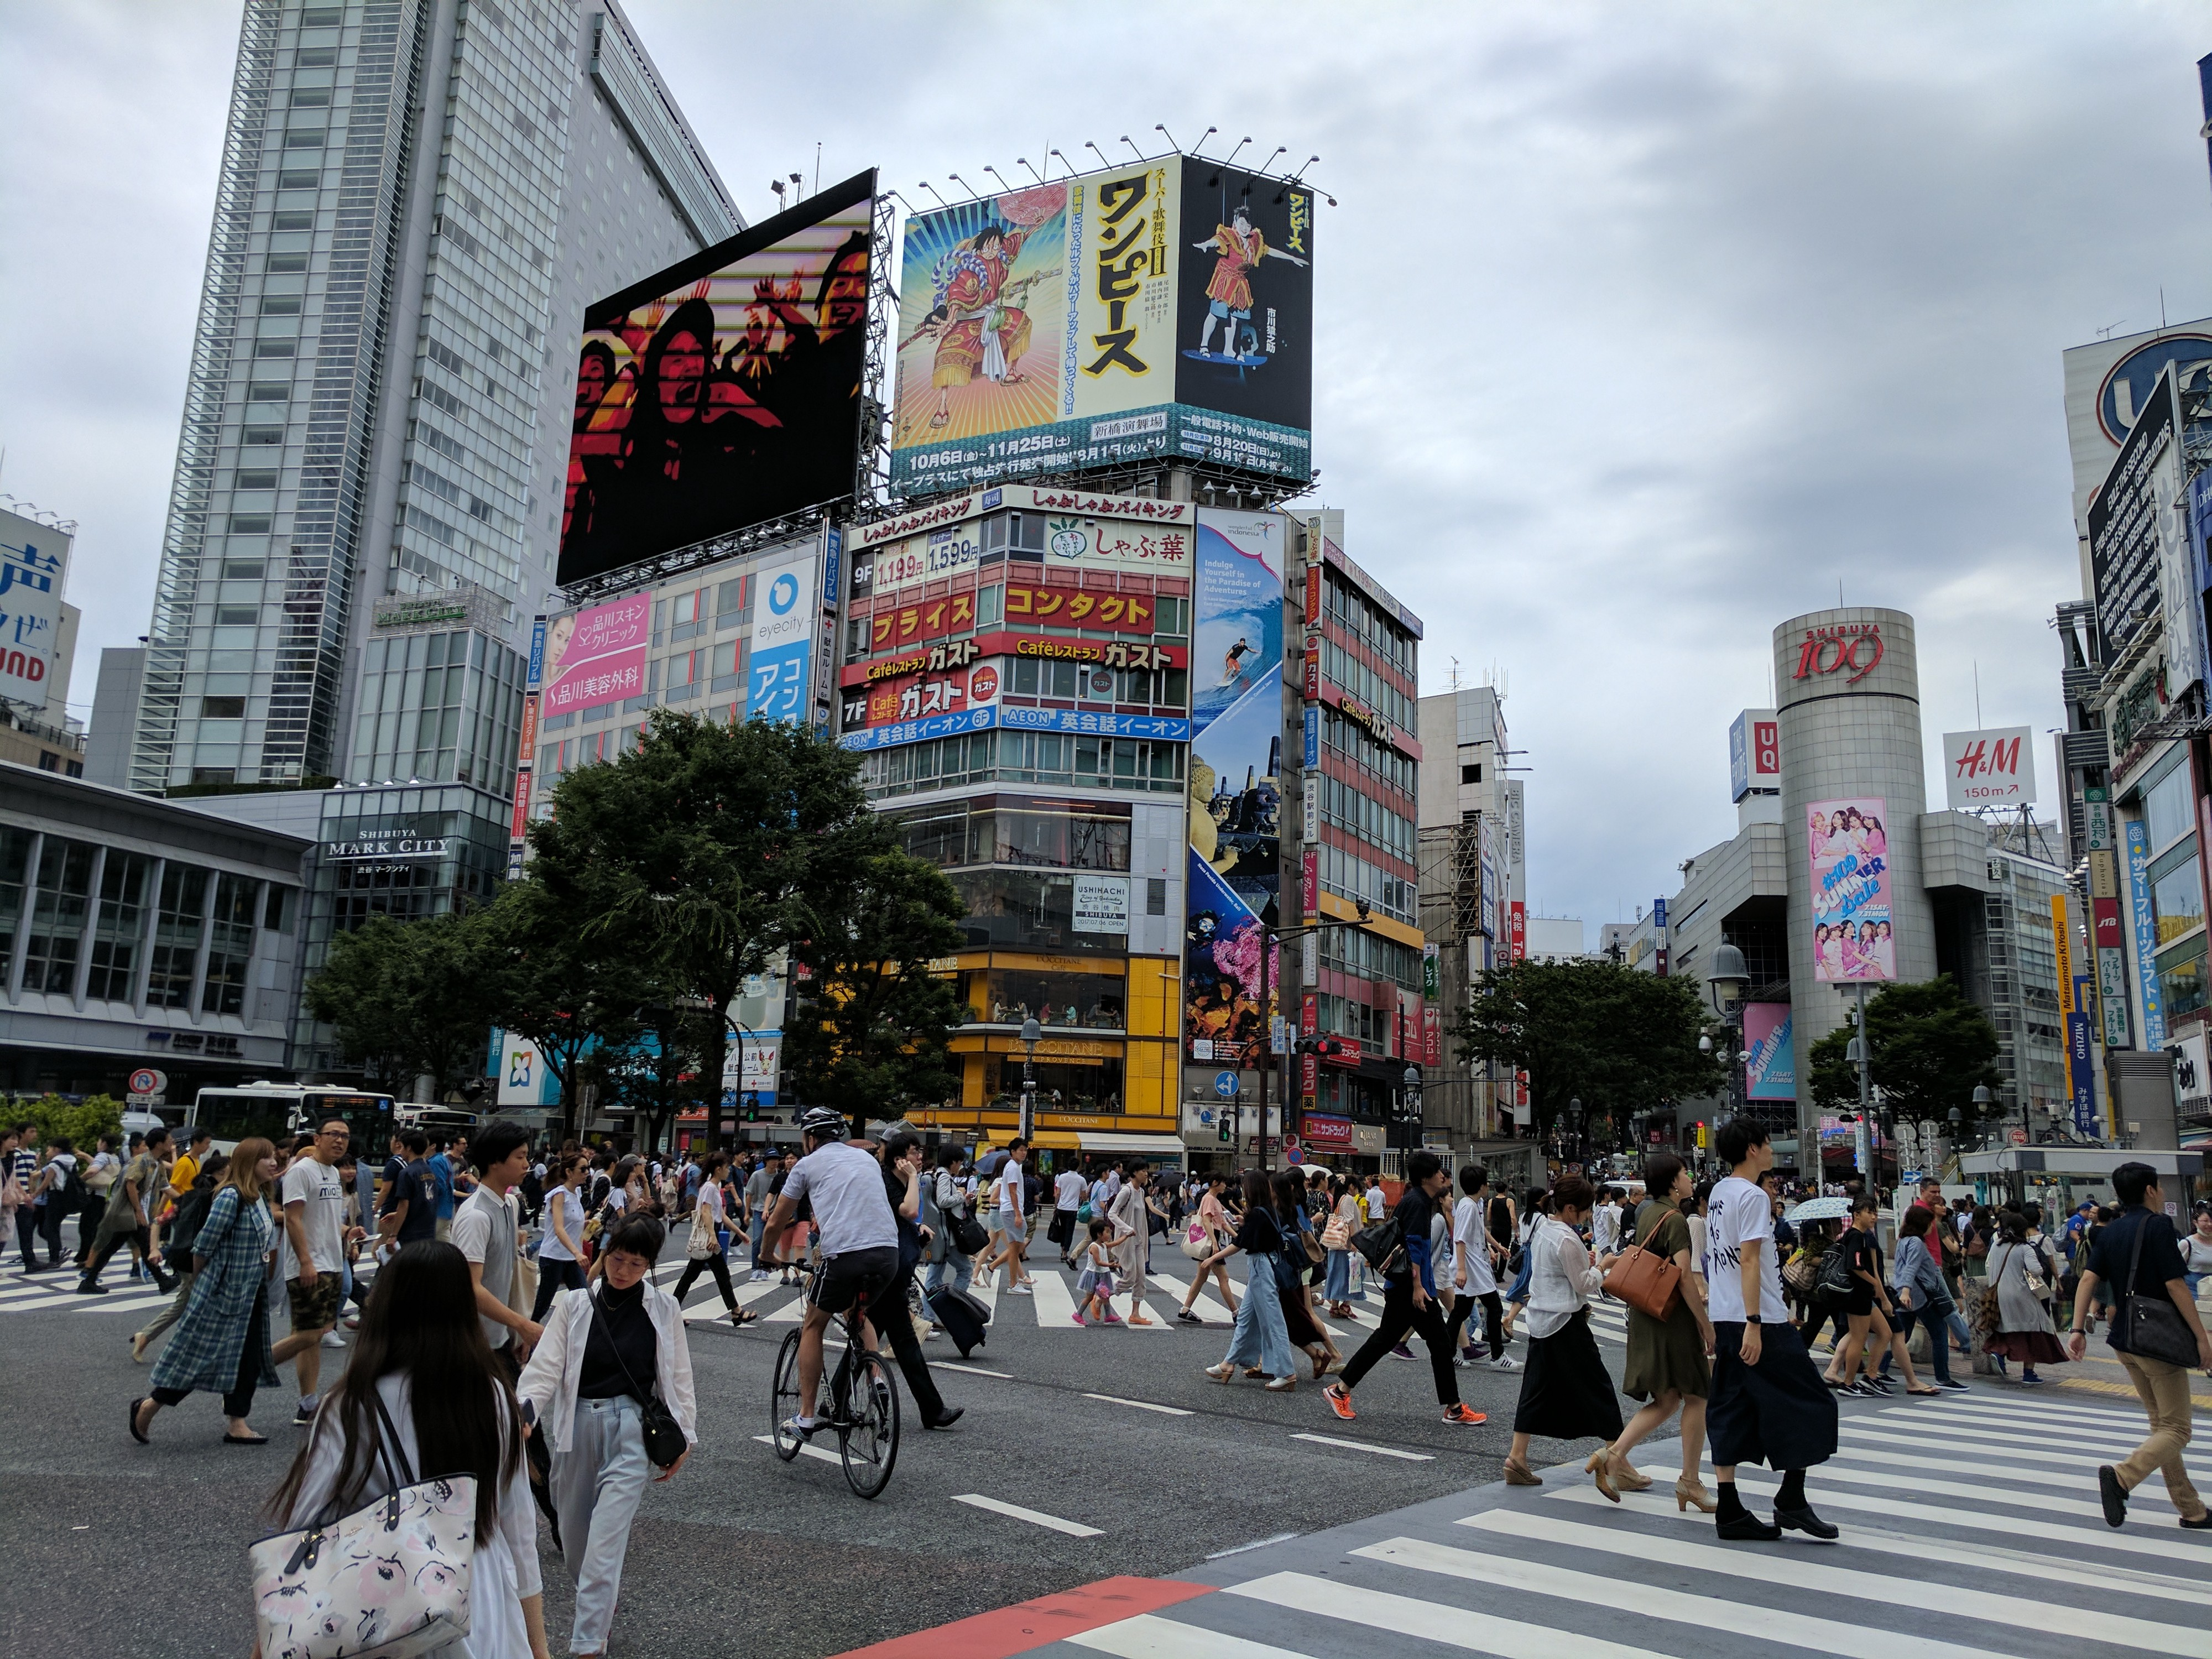 Shibuya Crossing in Tokyo. Masses of pedestrians and cyclists make their way across a very busy intersection. Tall buildings and billboards are in the background